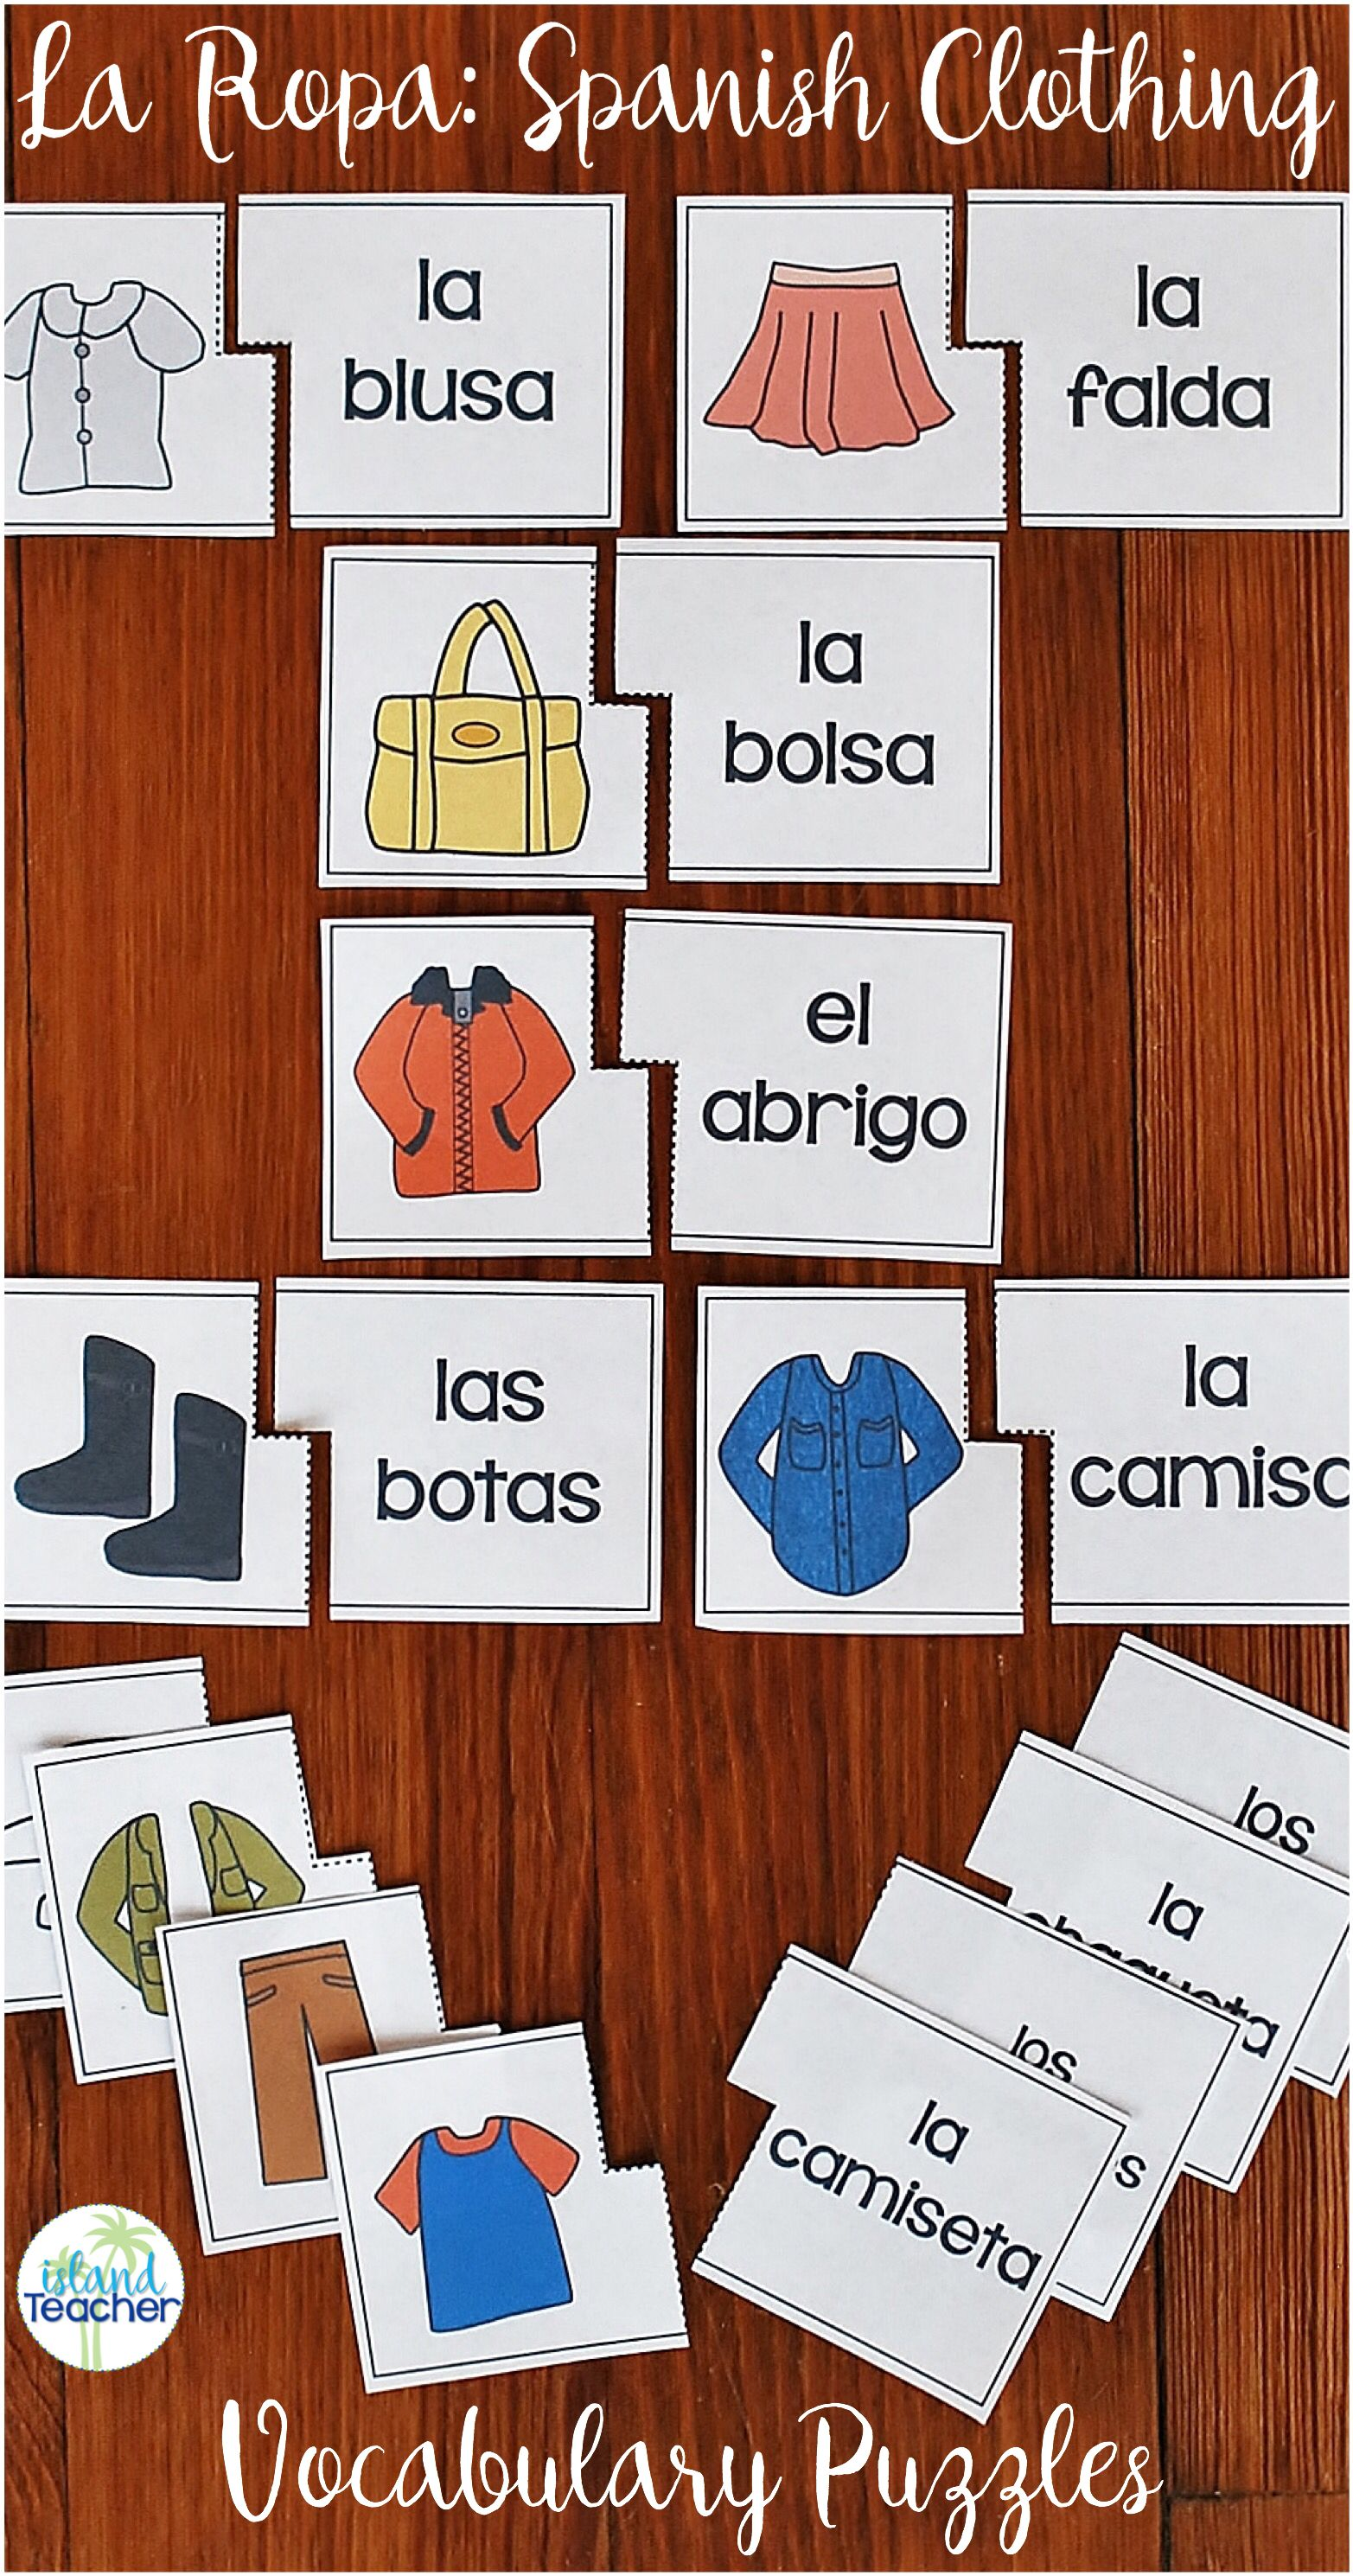 Spanish Clothing Puzzles La Ropa